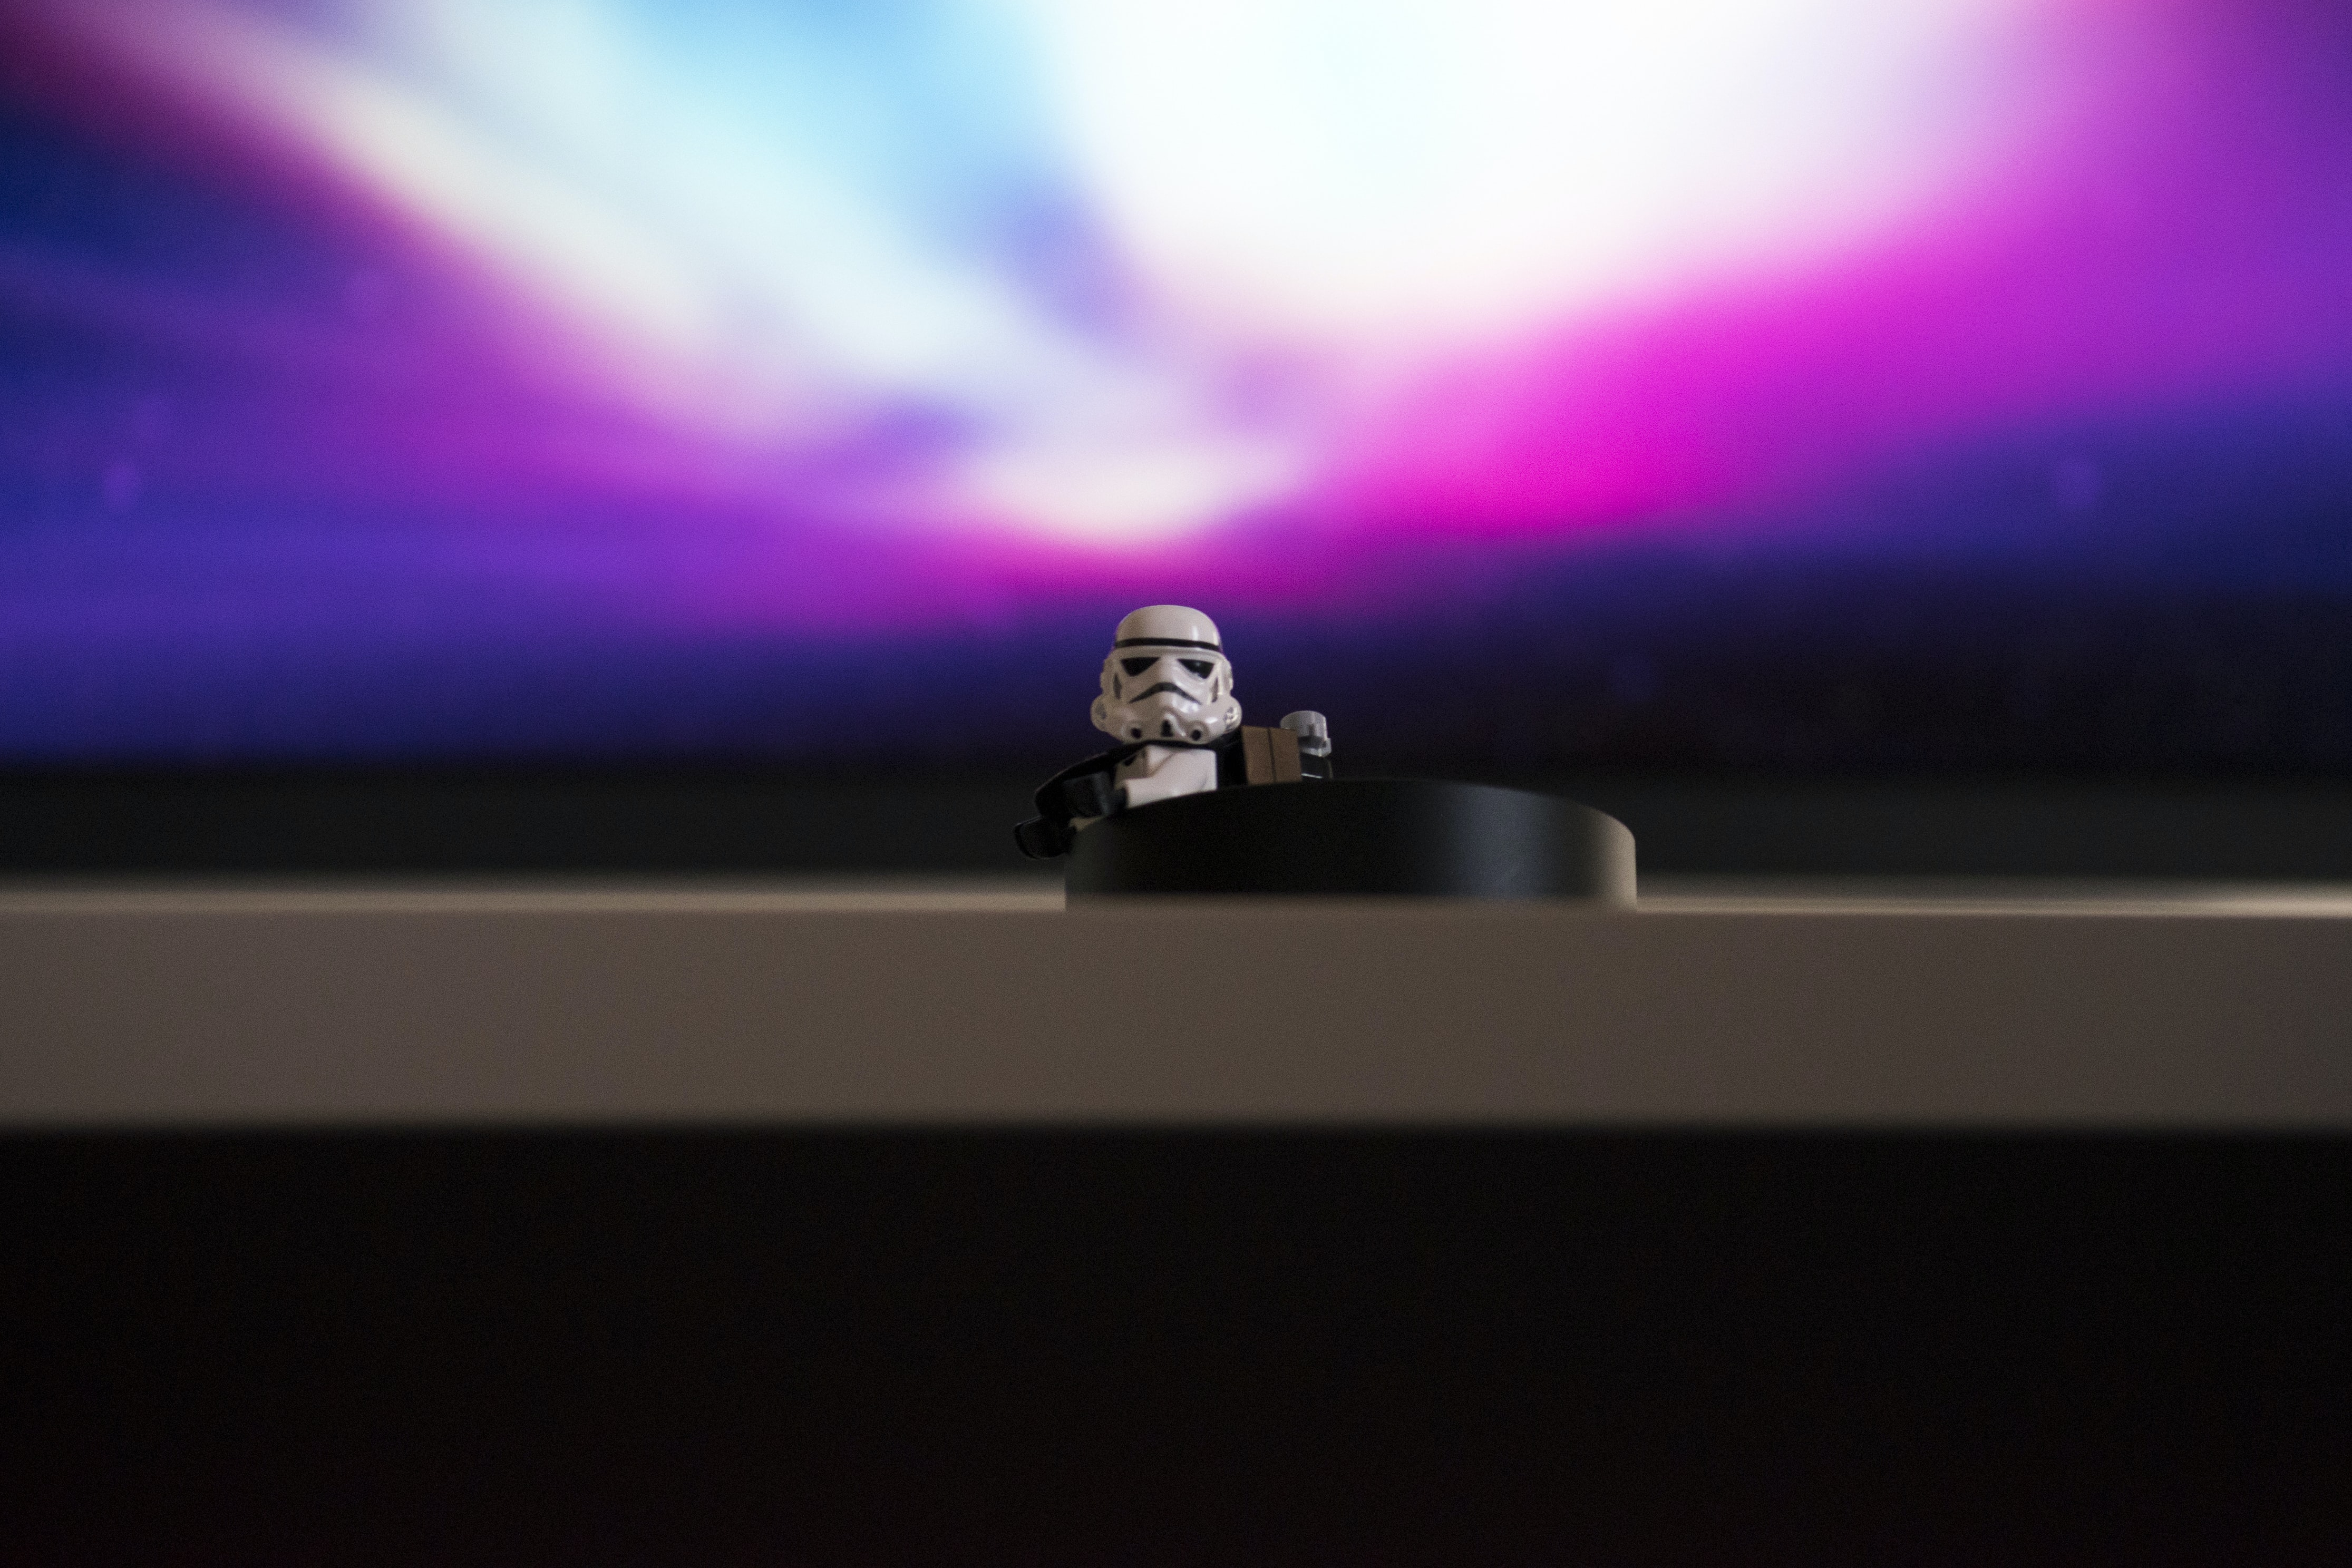 Star Wars Stormtrooper mini fig on desk